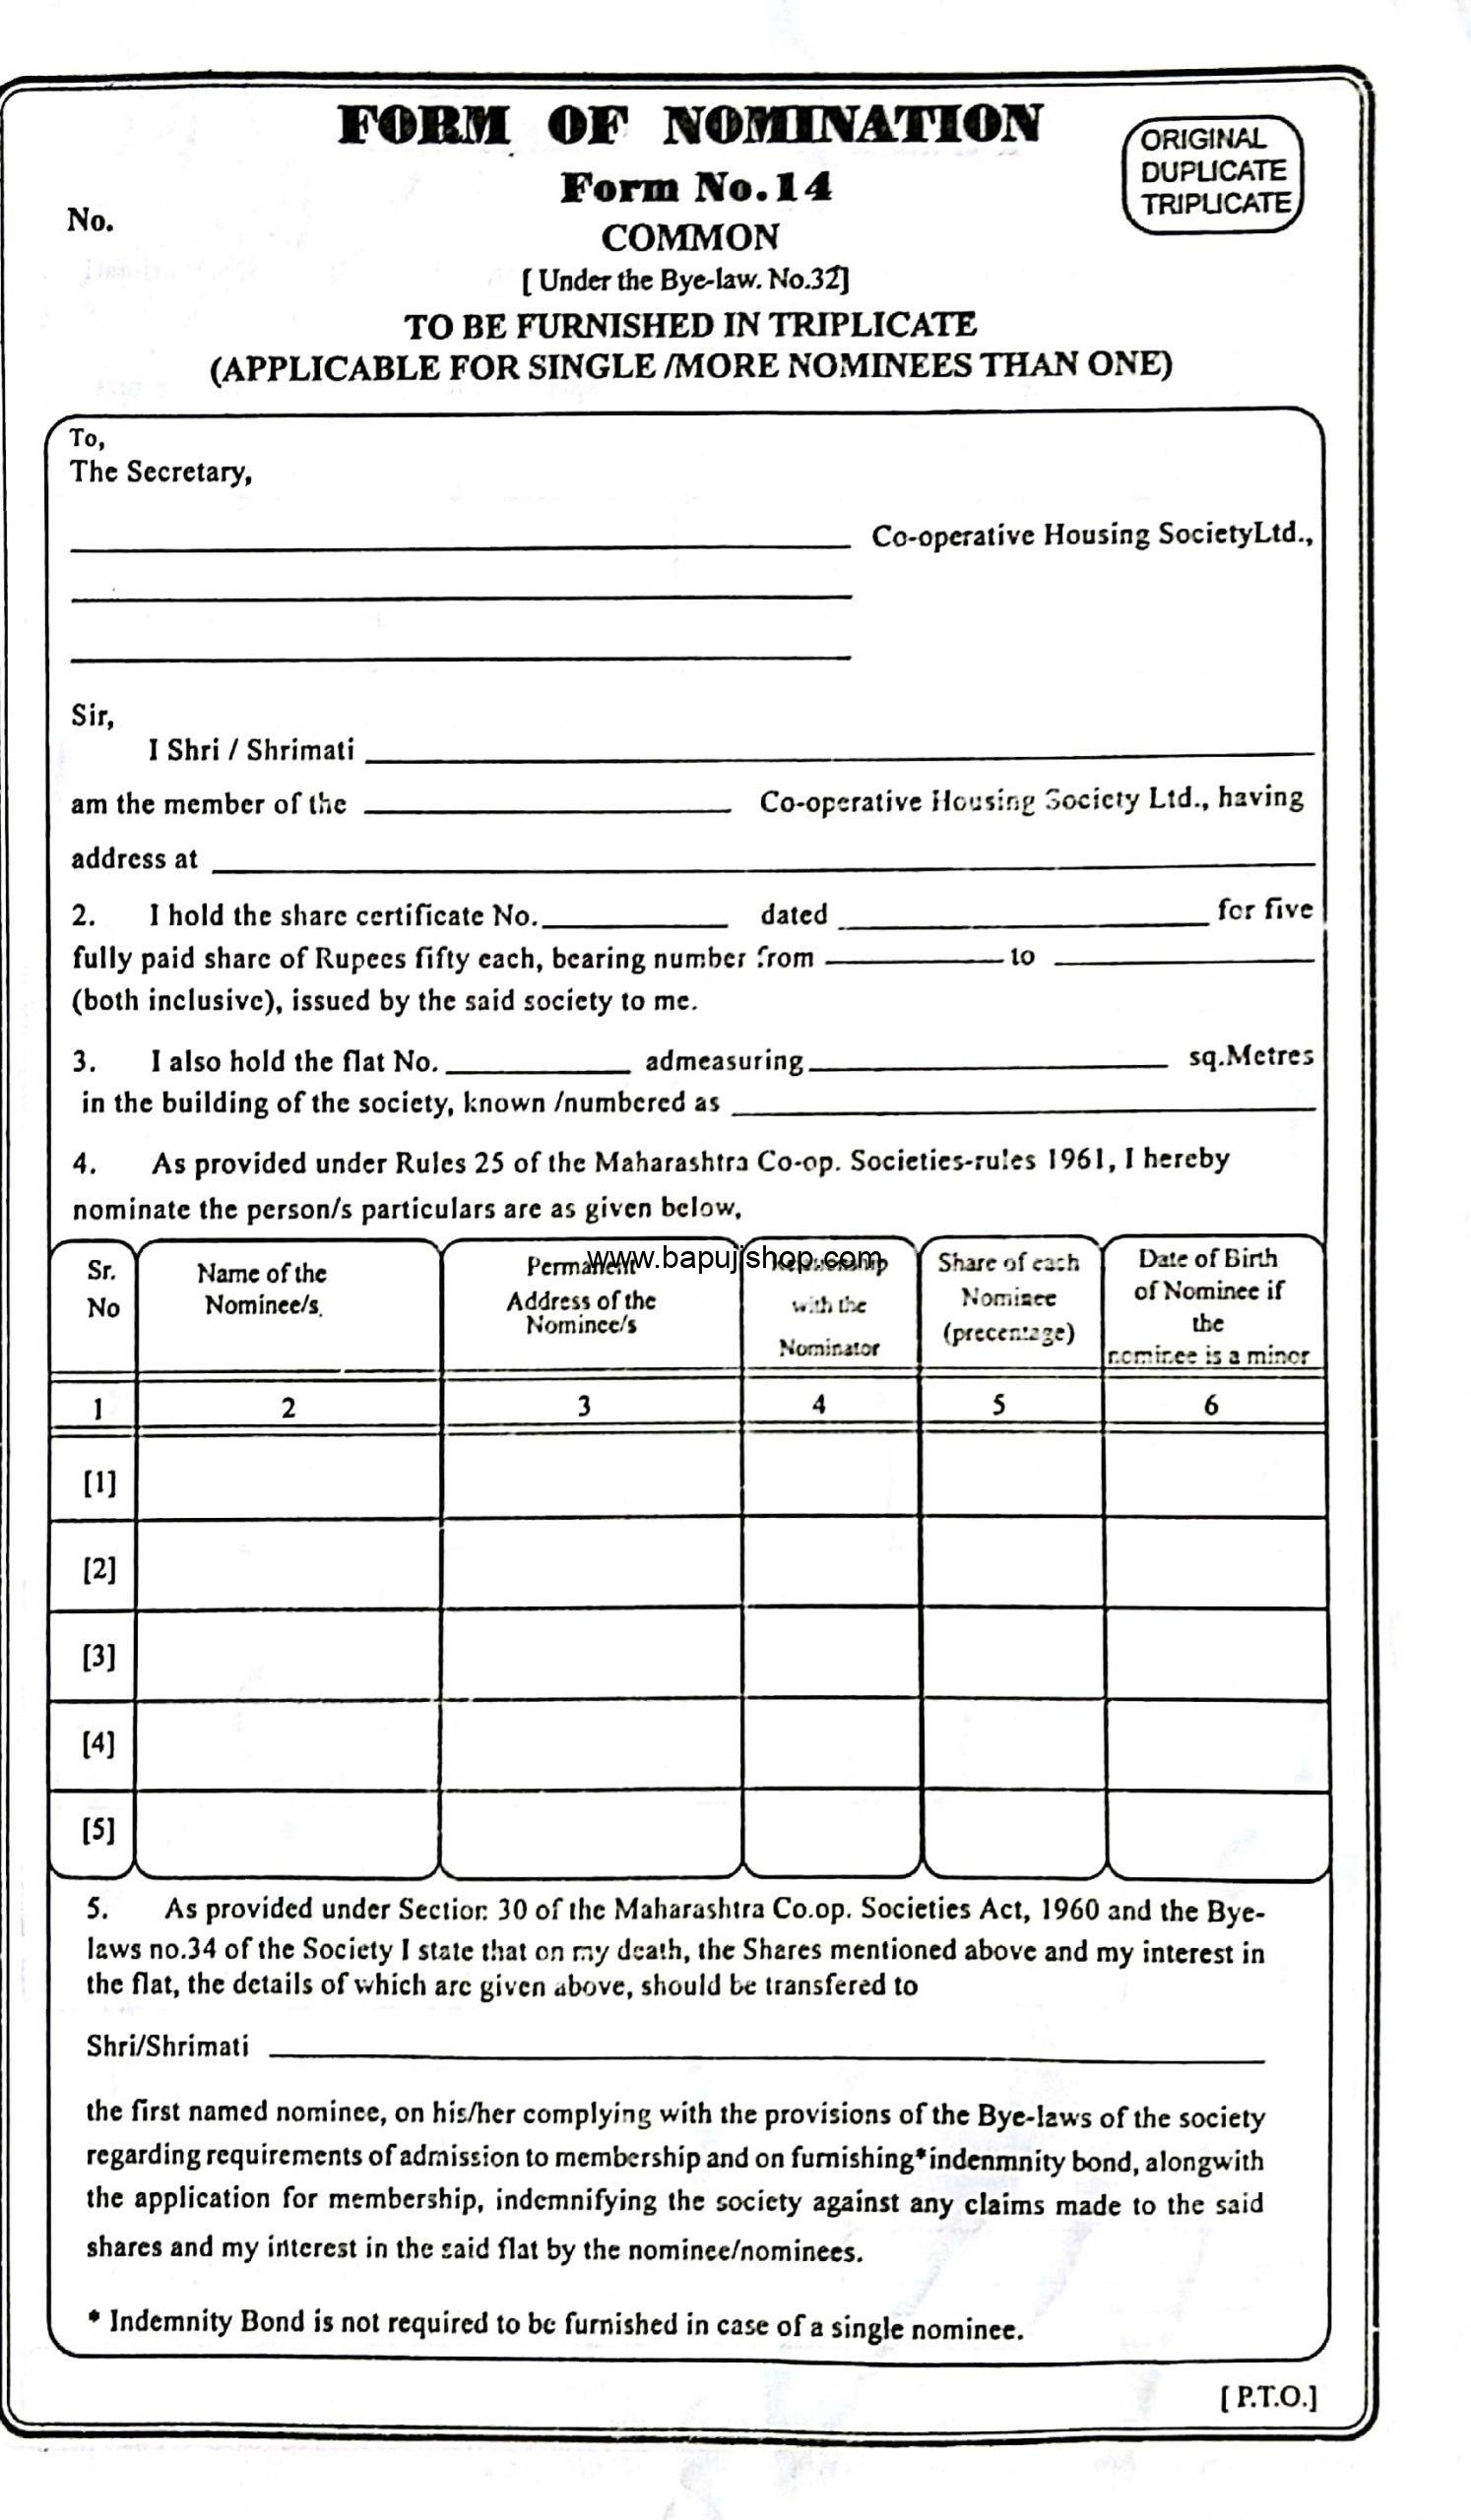 Form of Nomination No.14 Common under Bye-Law 32